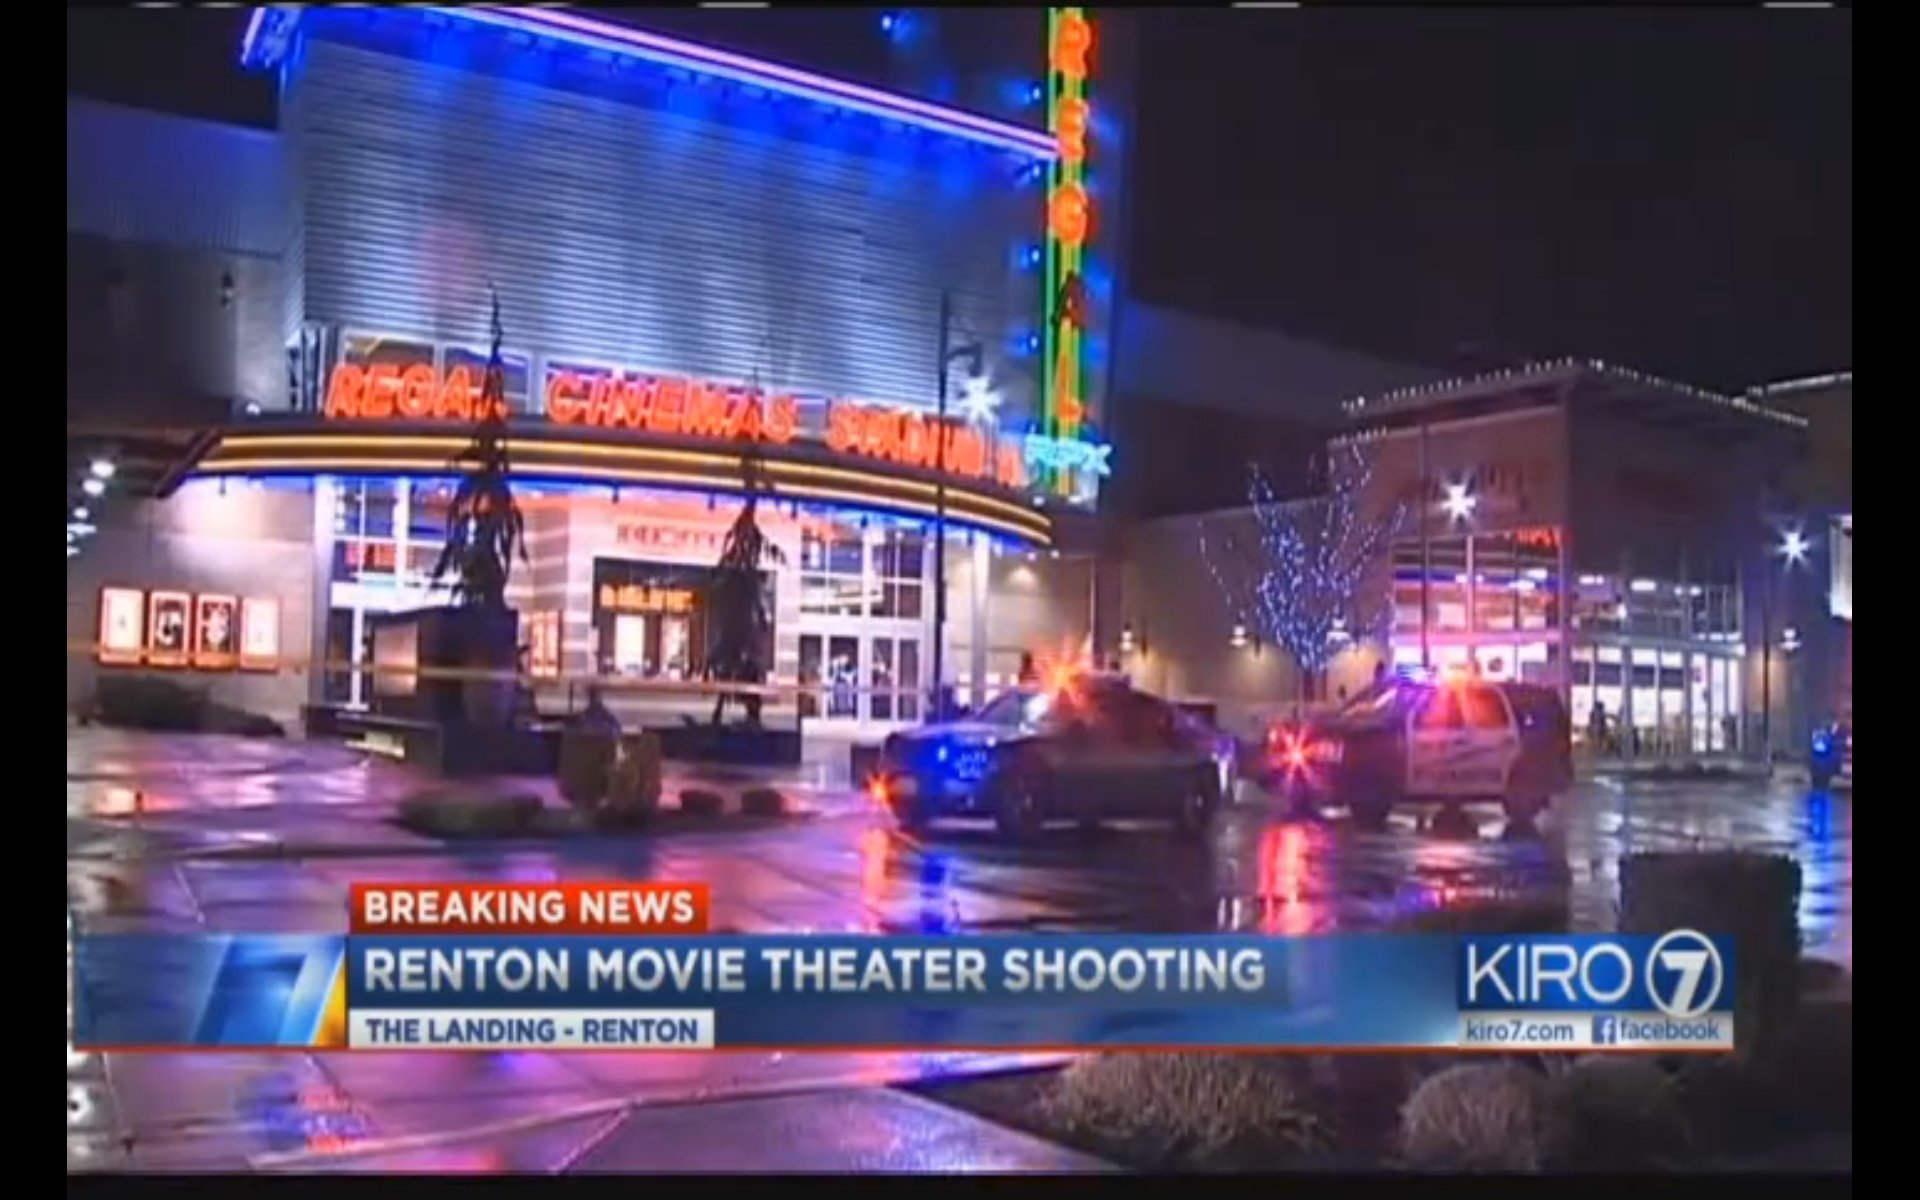 Police in Washington state have arrested a man who they say drunkenly shot a woman inside a movie theater after dropping his gun. The incident took place shortly after 8pm Thursday at Regal Cinemas at The Landing in Renton. Investigators say a 29-year-old man appearing to be intoxicated fumbled with a gun and shot a 40-year-old woman during a showing of the movie 13 Hours: The Secret Soldiers of Benghazi. Police believe believe the suspect and victim did not know each other. The unnamed victim suffered a gunshot wound to her shoulder area and was rushed to Harbor View Medical Center in critical condition. Hospital spokeswoman Susan Gregg said Thursday night the woman's condition has since been upgraded to stable. Following the shooting, witnesses say the gunman calmly walked out of the theater and headed to a nearby restaurant, where he dropped the weapon and went to use the bathroom. The 29-year-old later returned to his home in Newcastle and called 911, telling police the shooting was accidental.